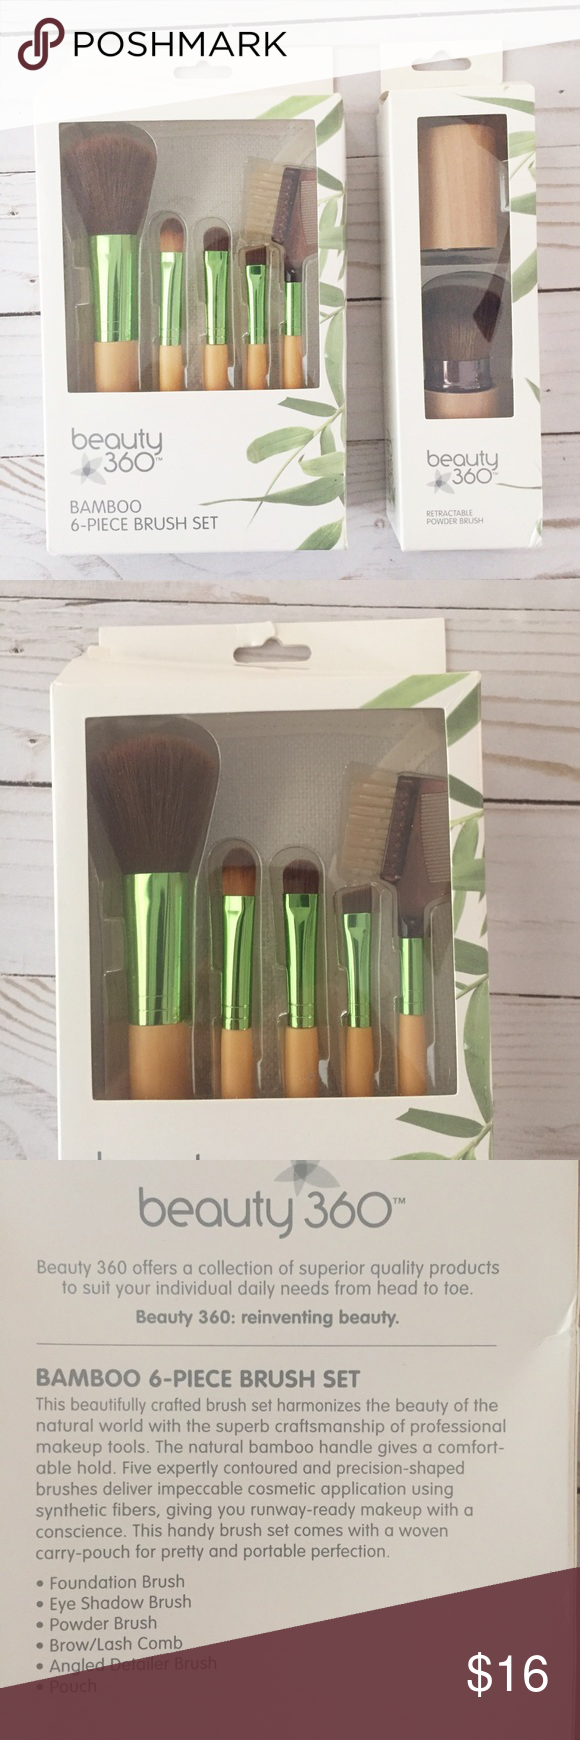 Bamboo Makeup Brushes: Bamboo Brush Set BRAND NEW Never Used. Still In Box. Open